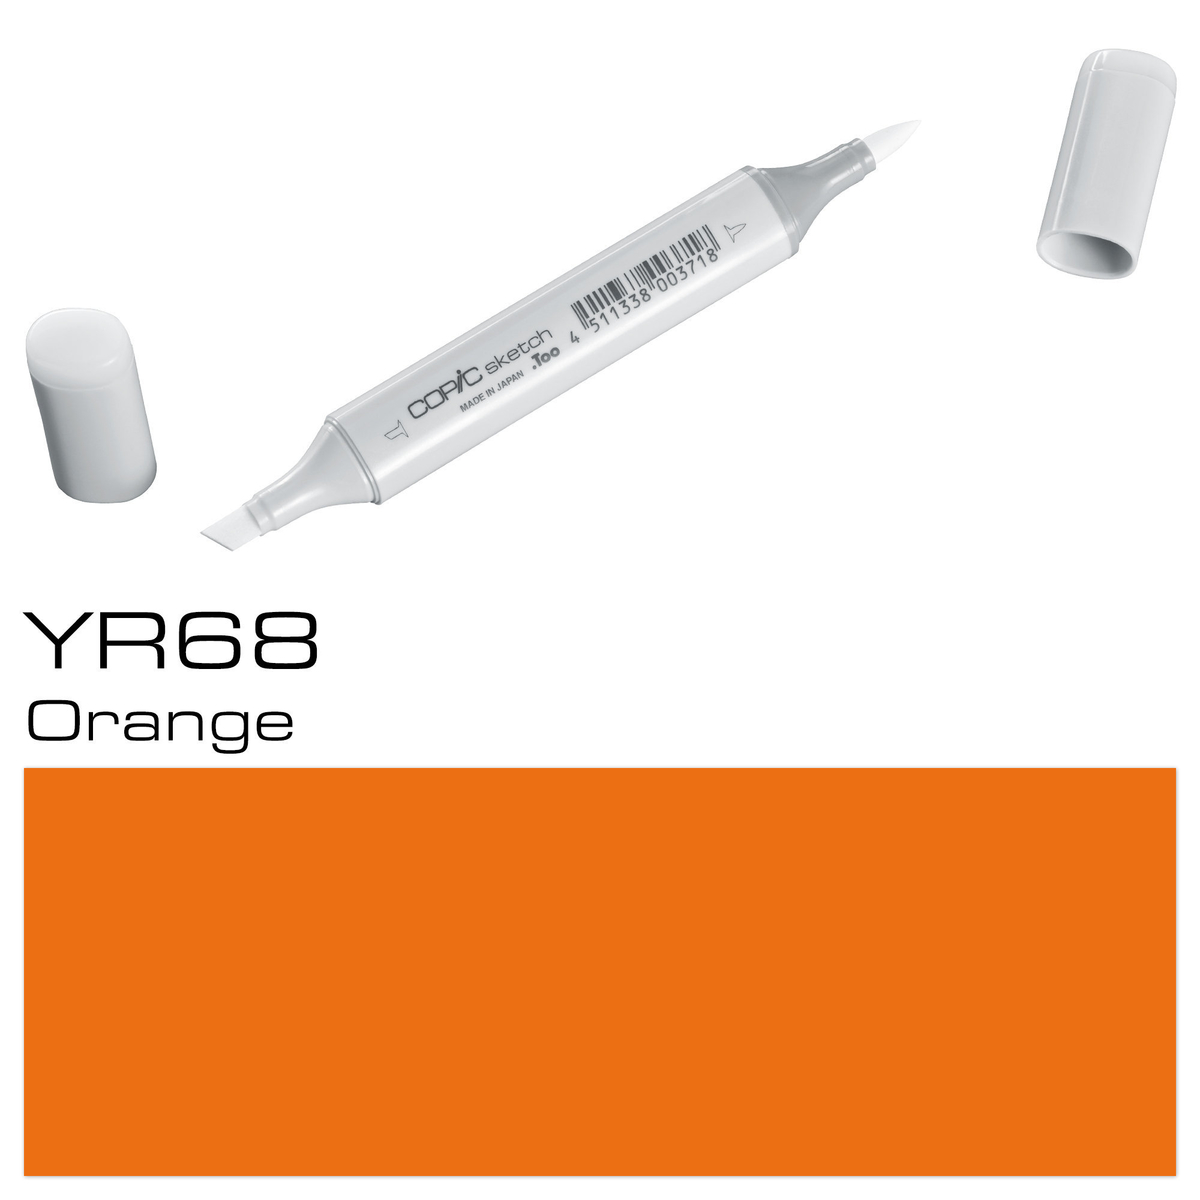 Copic Sketch YR 68 orange